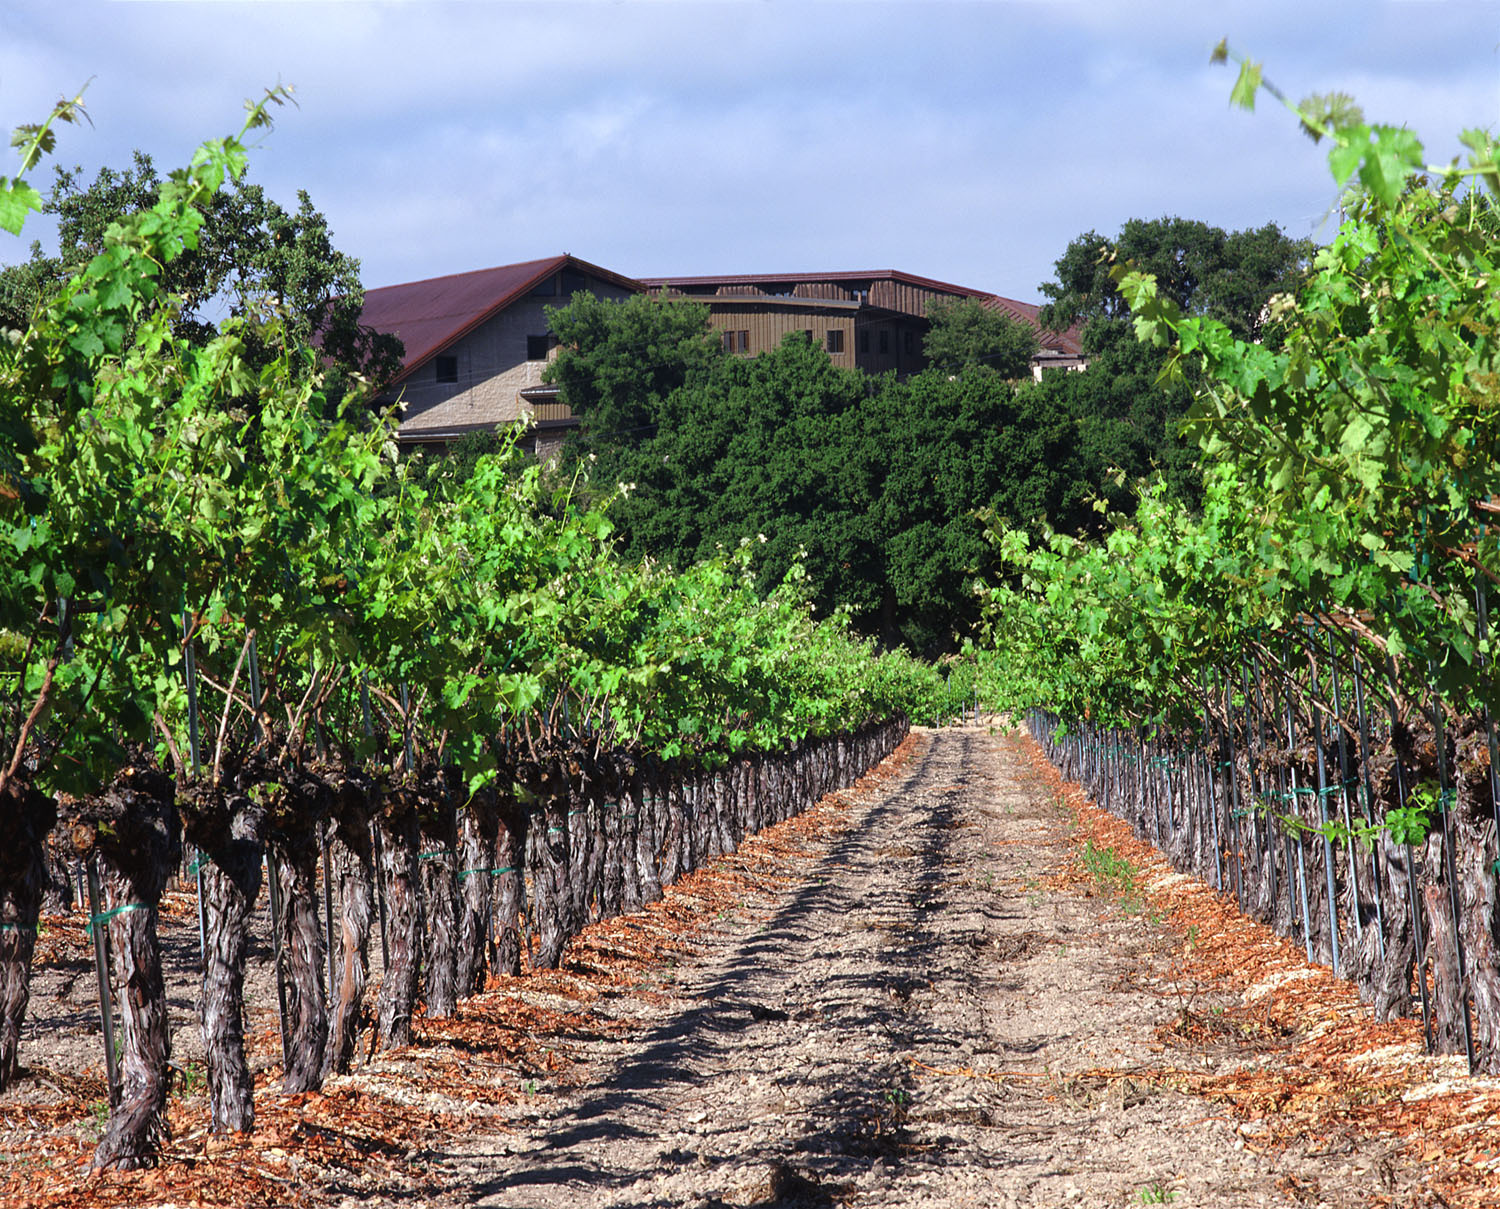 Santa barbara wine country, Foley family wines